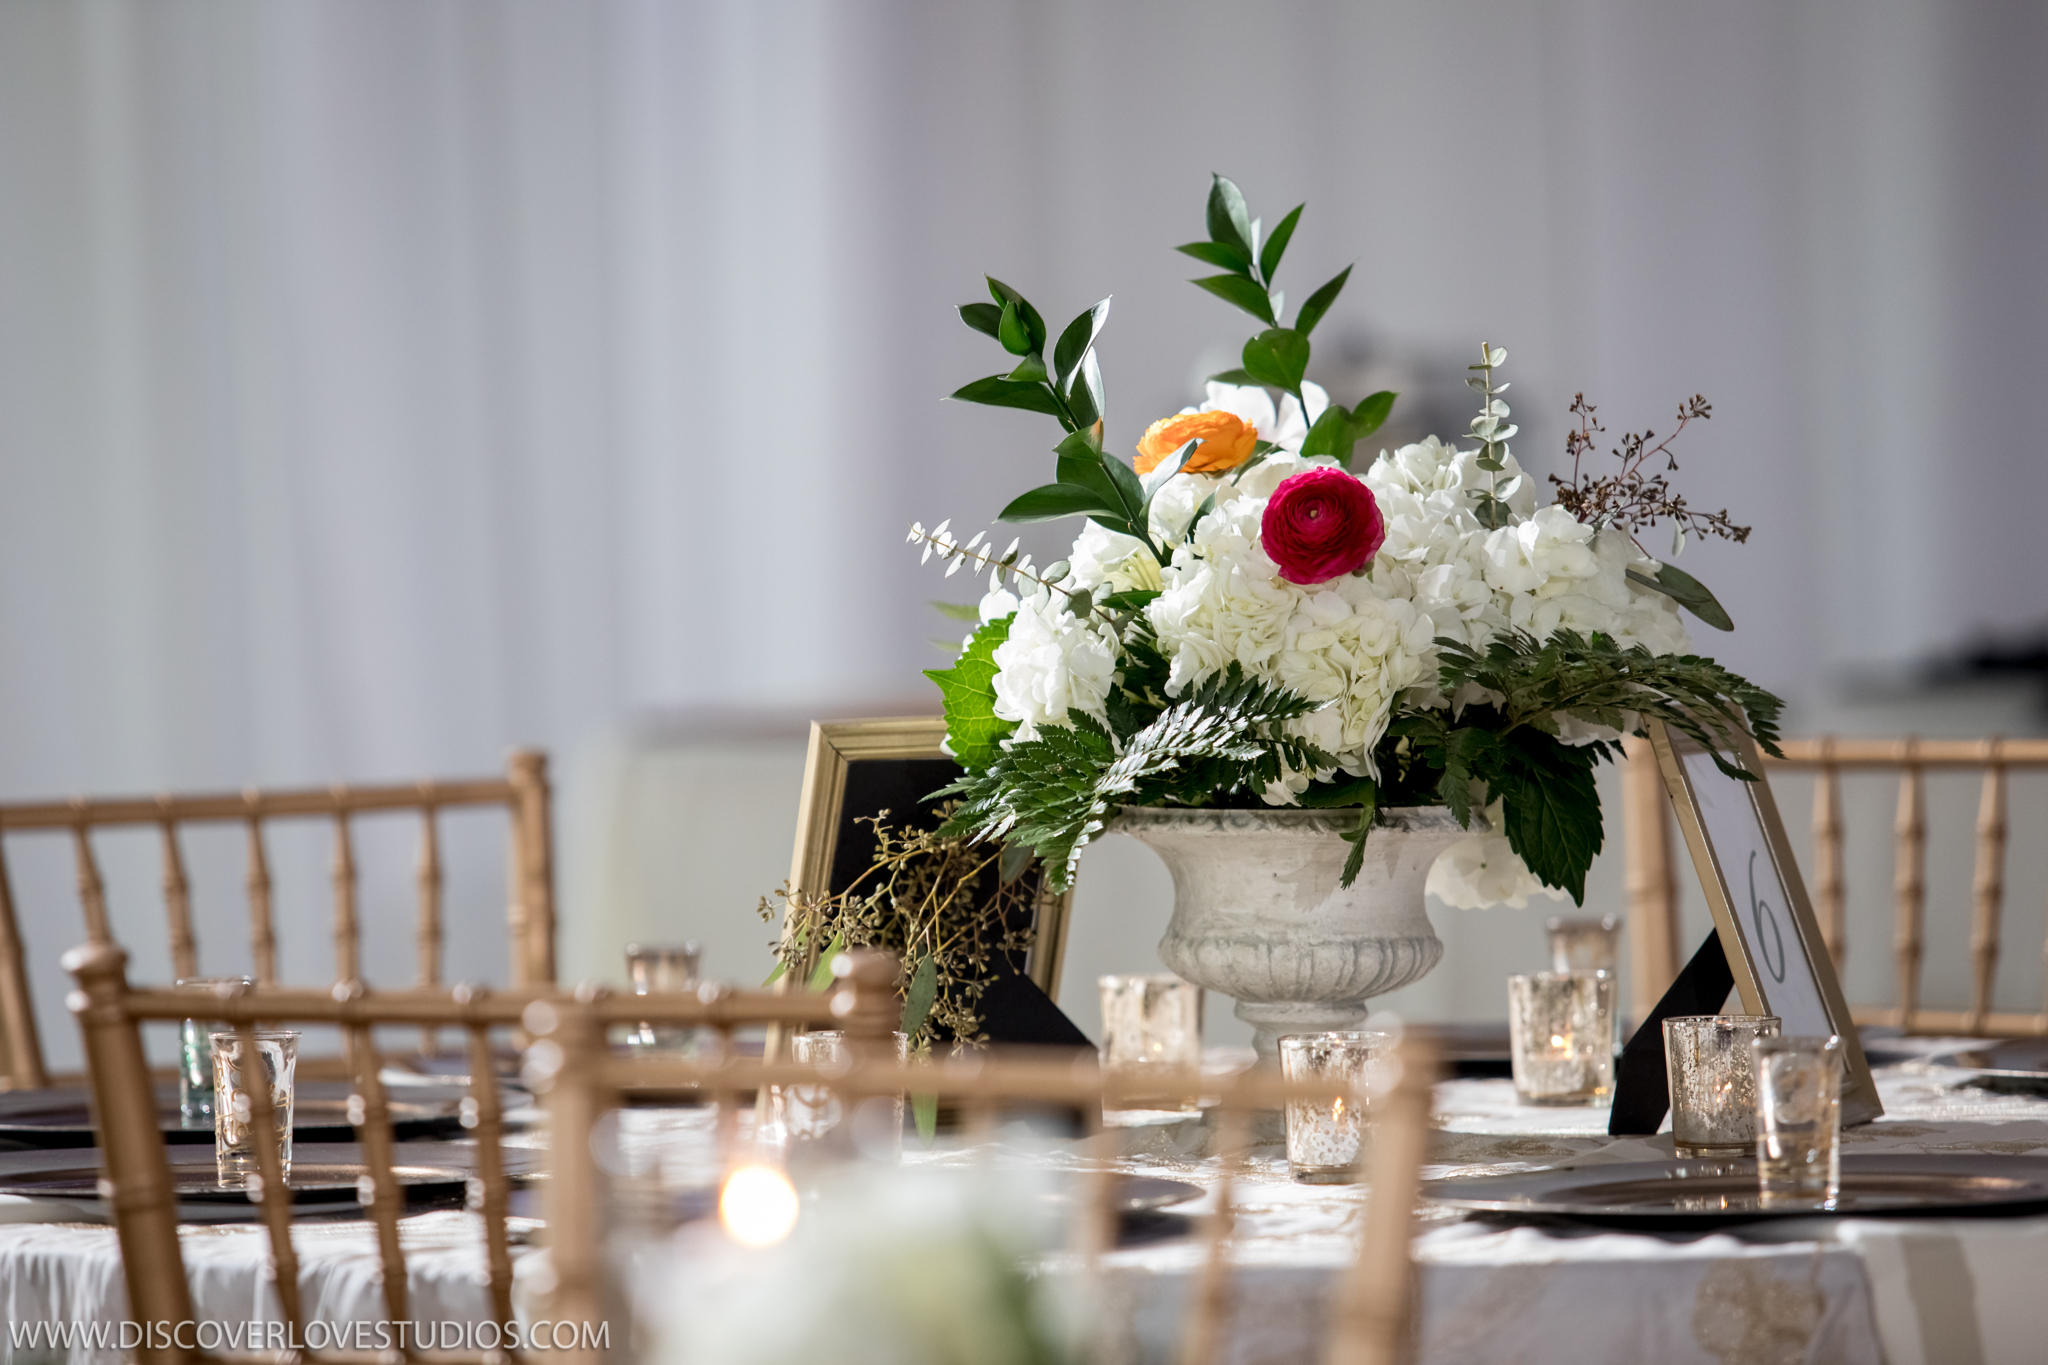 Discover Love Studios captures centerpieces made by Magnificent Moments Weddings for a wedding reception at The Mint Museum Uptown